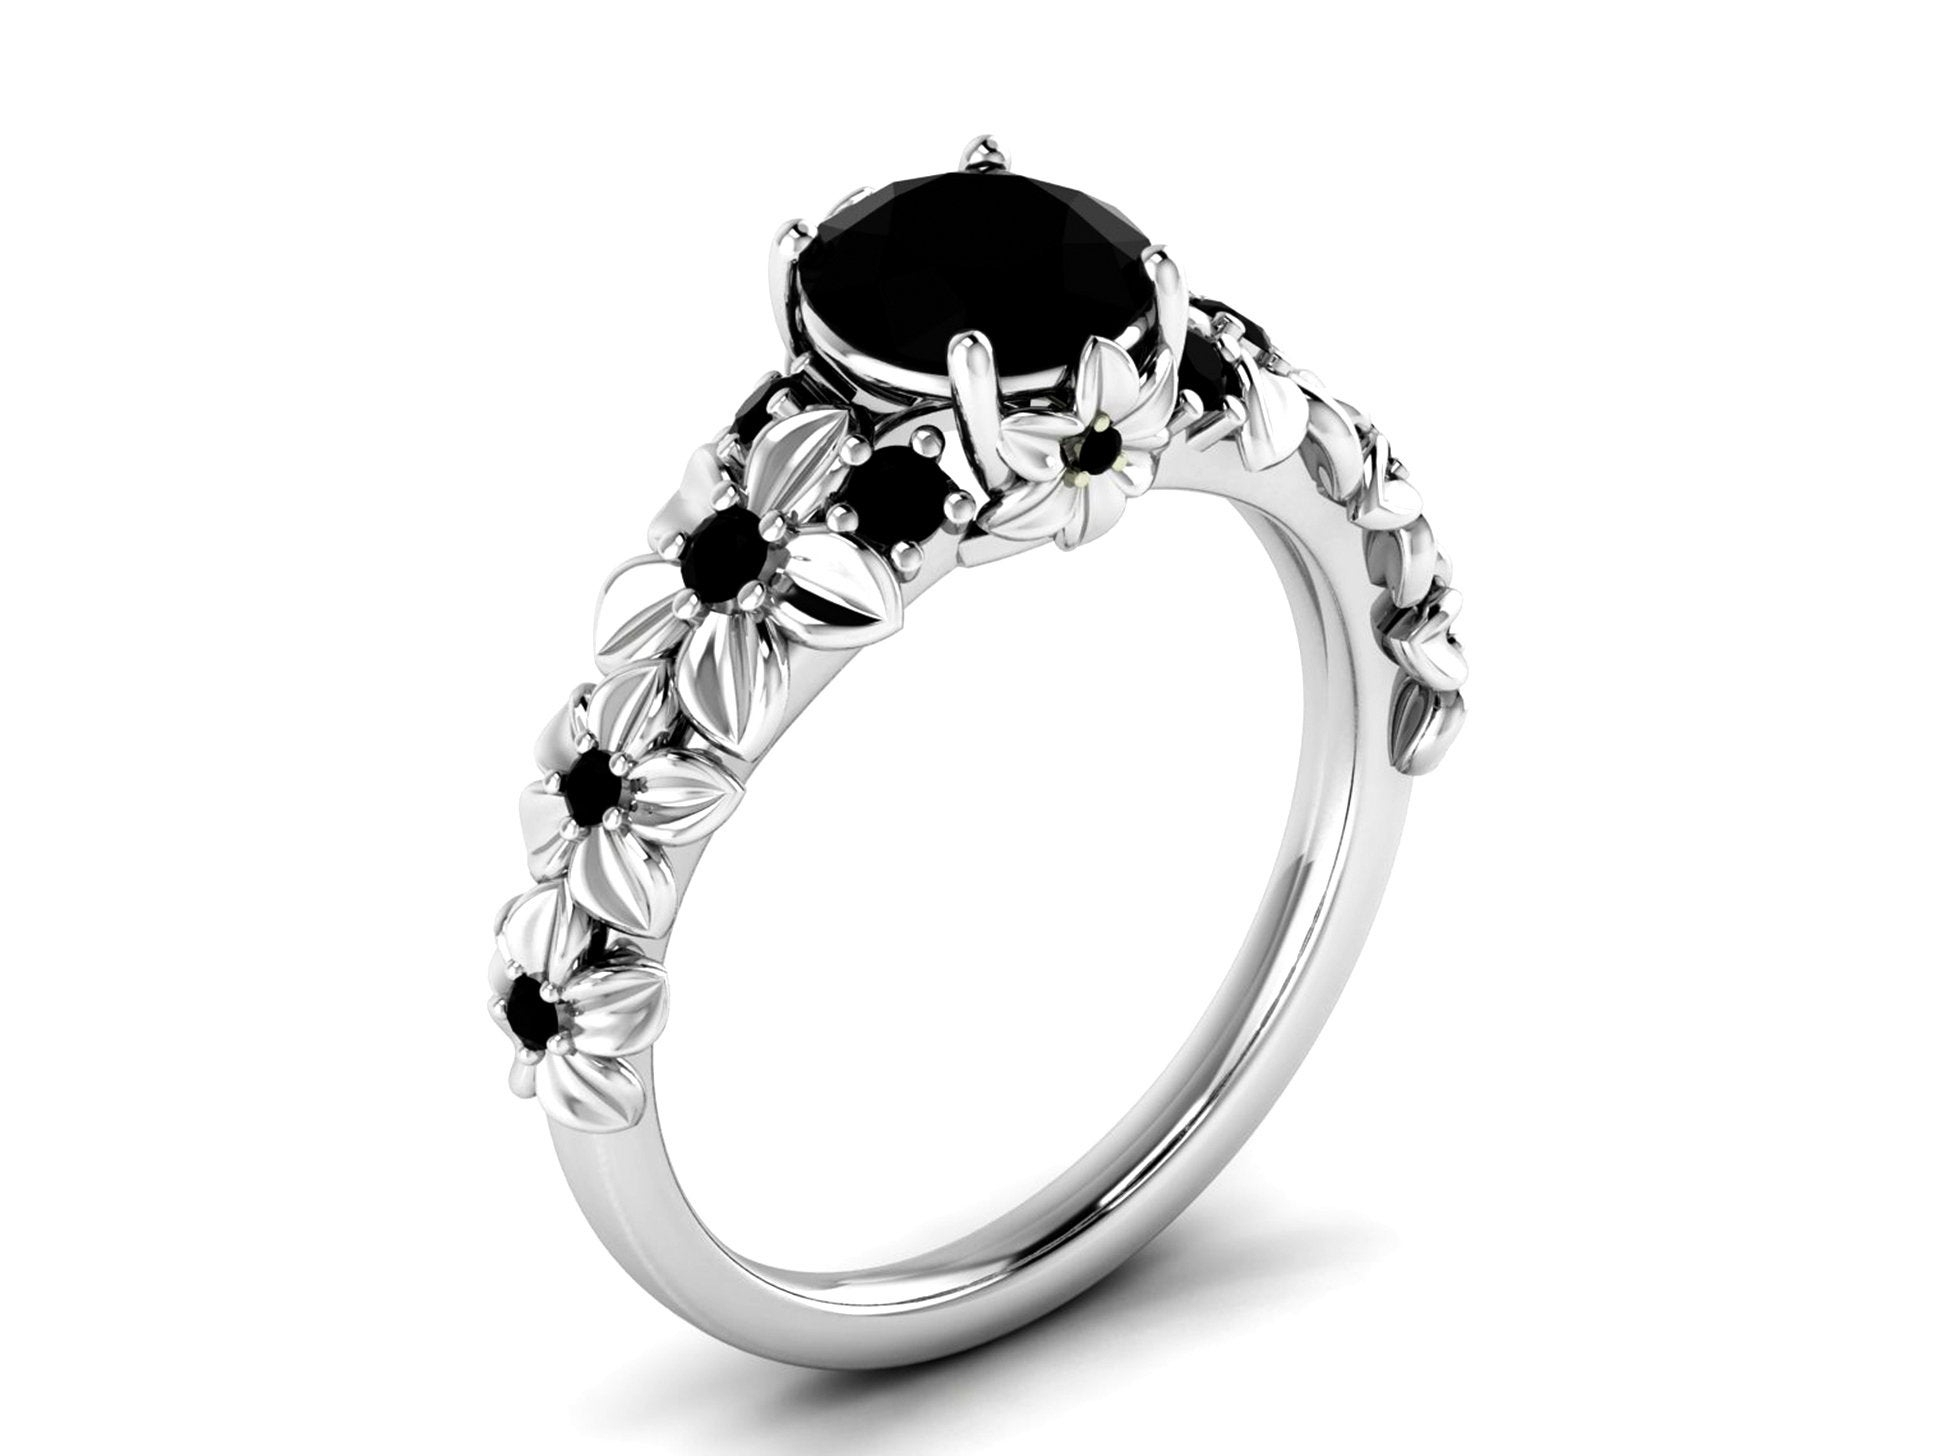 Sterling Silver Black Onyx Ring Black Spinel Ring Black Onyx Rings For Women Black Stone Rings For Women Silver Onyx Ring Anniversary Rings Throughout Most Up To Date Enhanced Black And White Diamond Vintage Style Anniversary Bands In Sterling Silver (View 18 of 25)